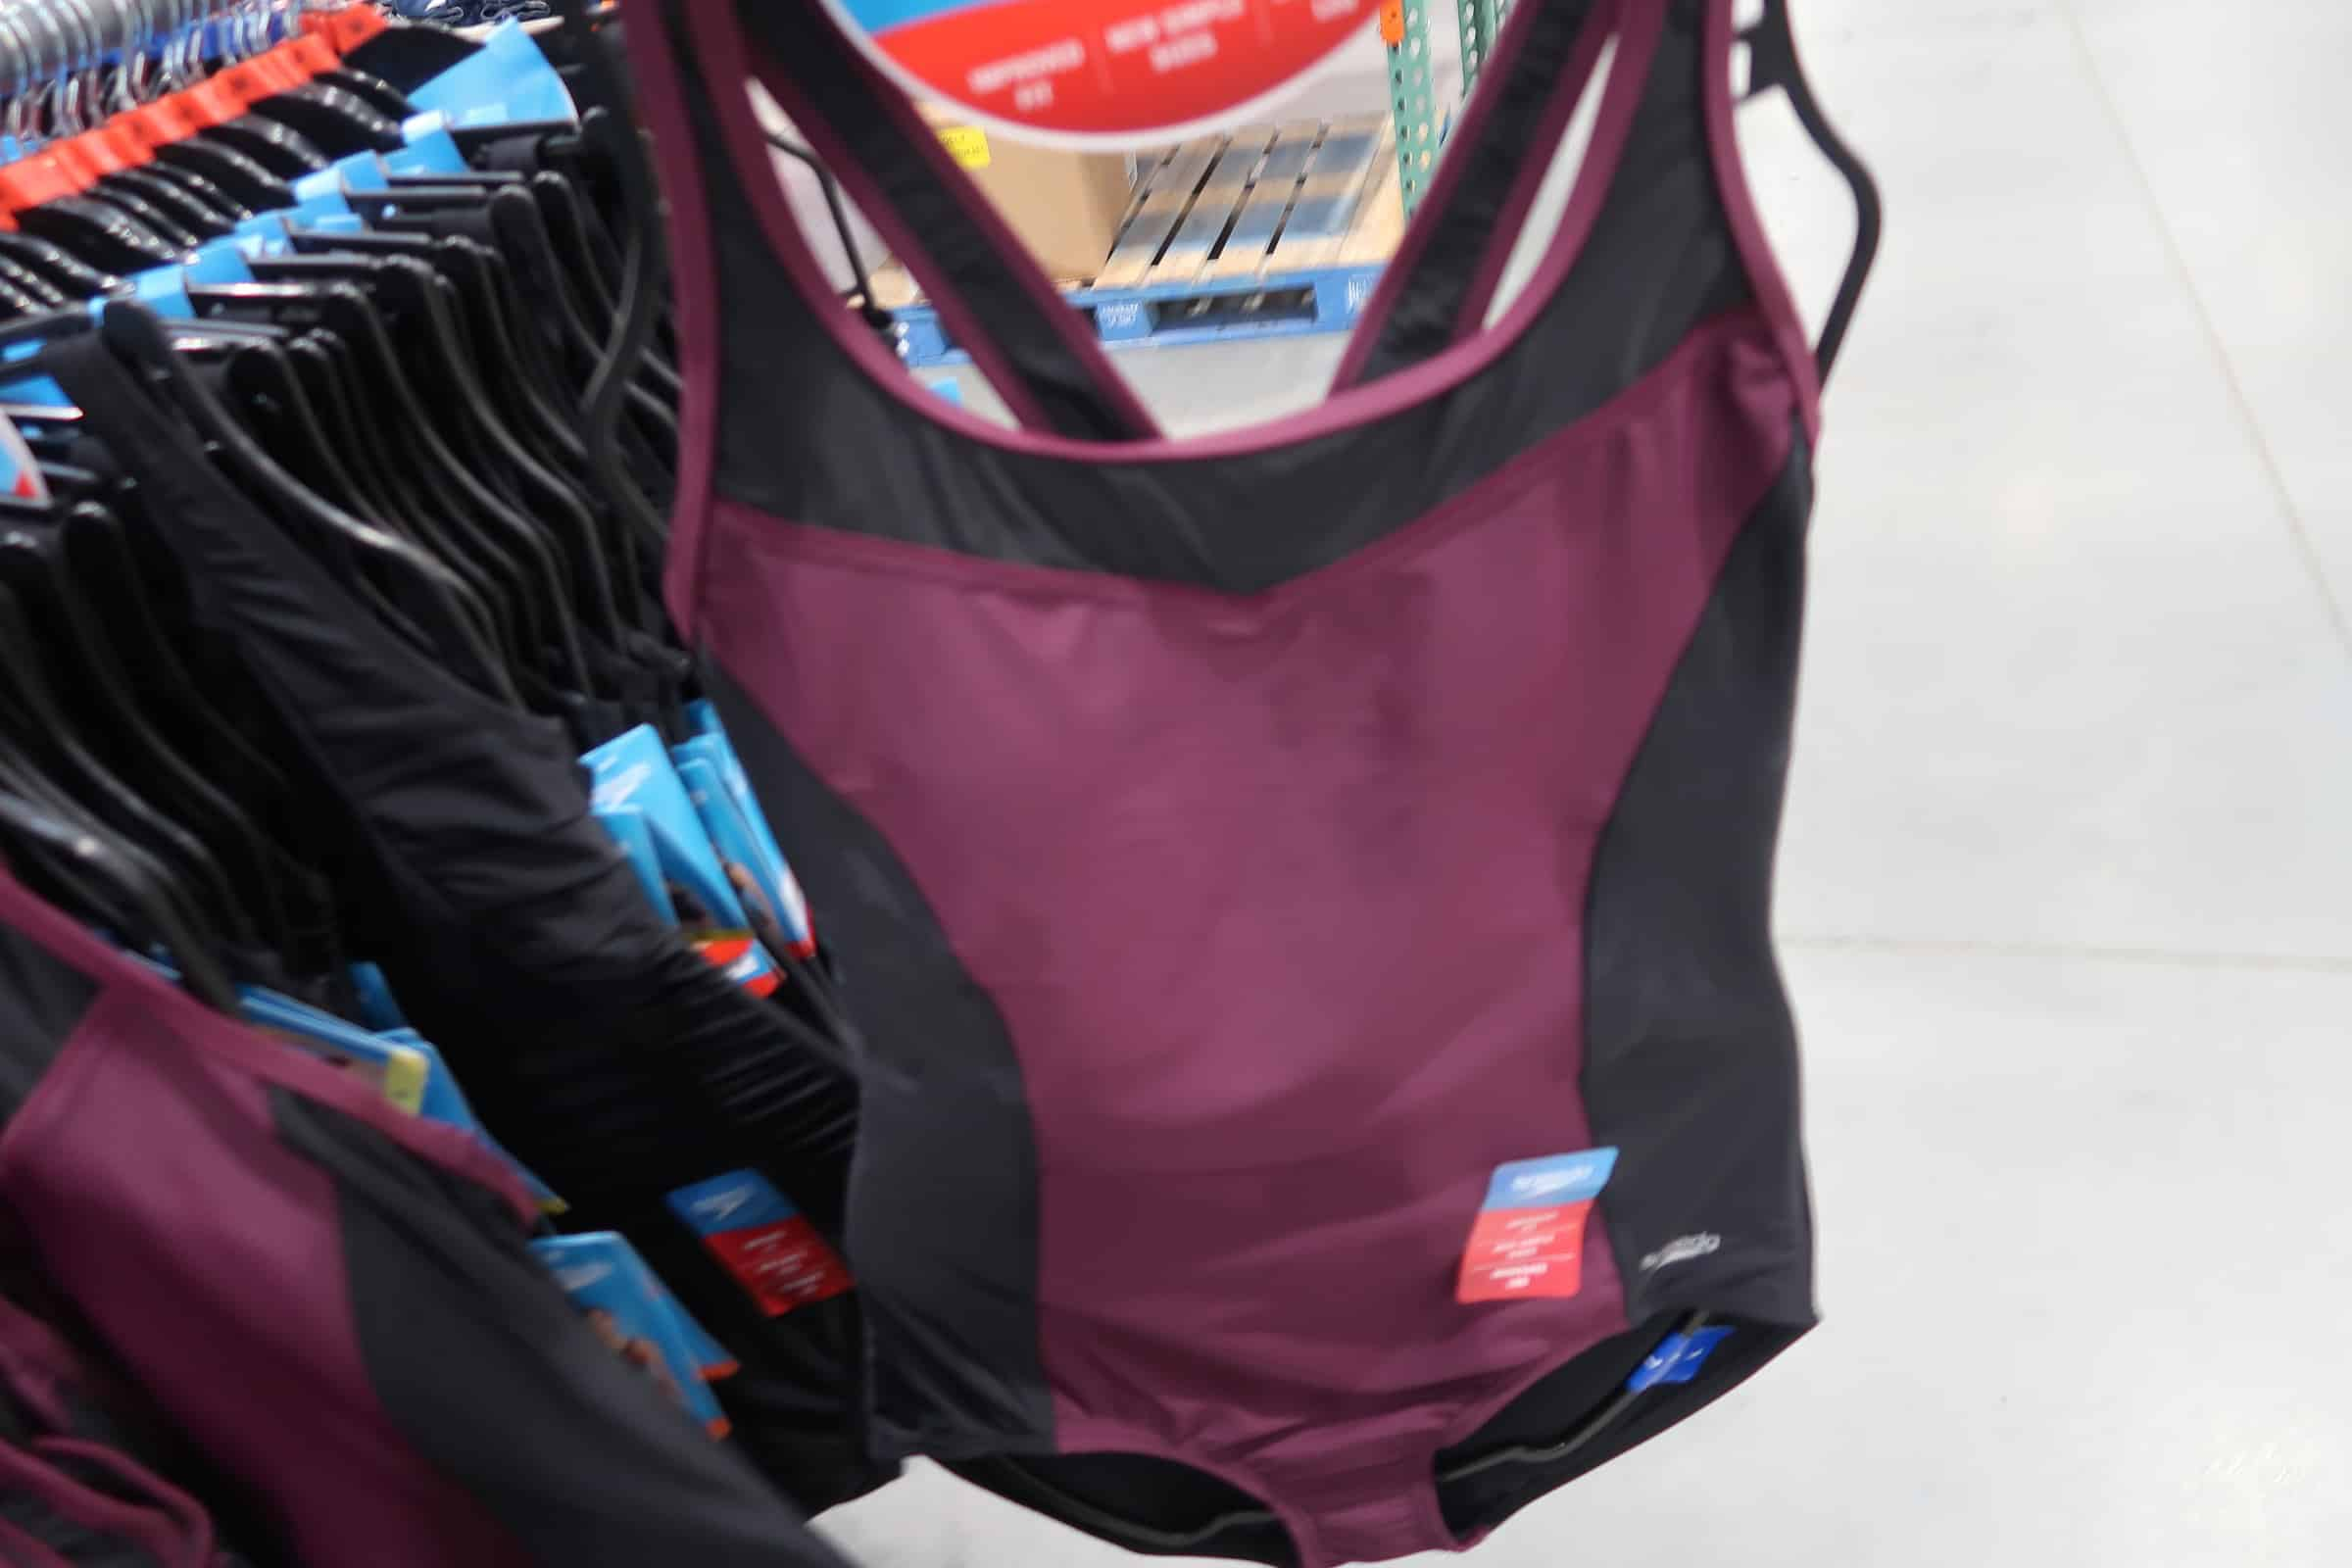 Speedo Ladies Swim Suit at Costco Now